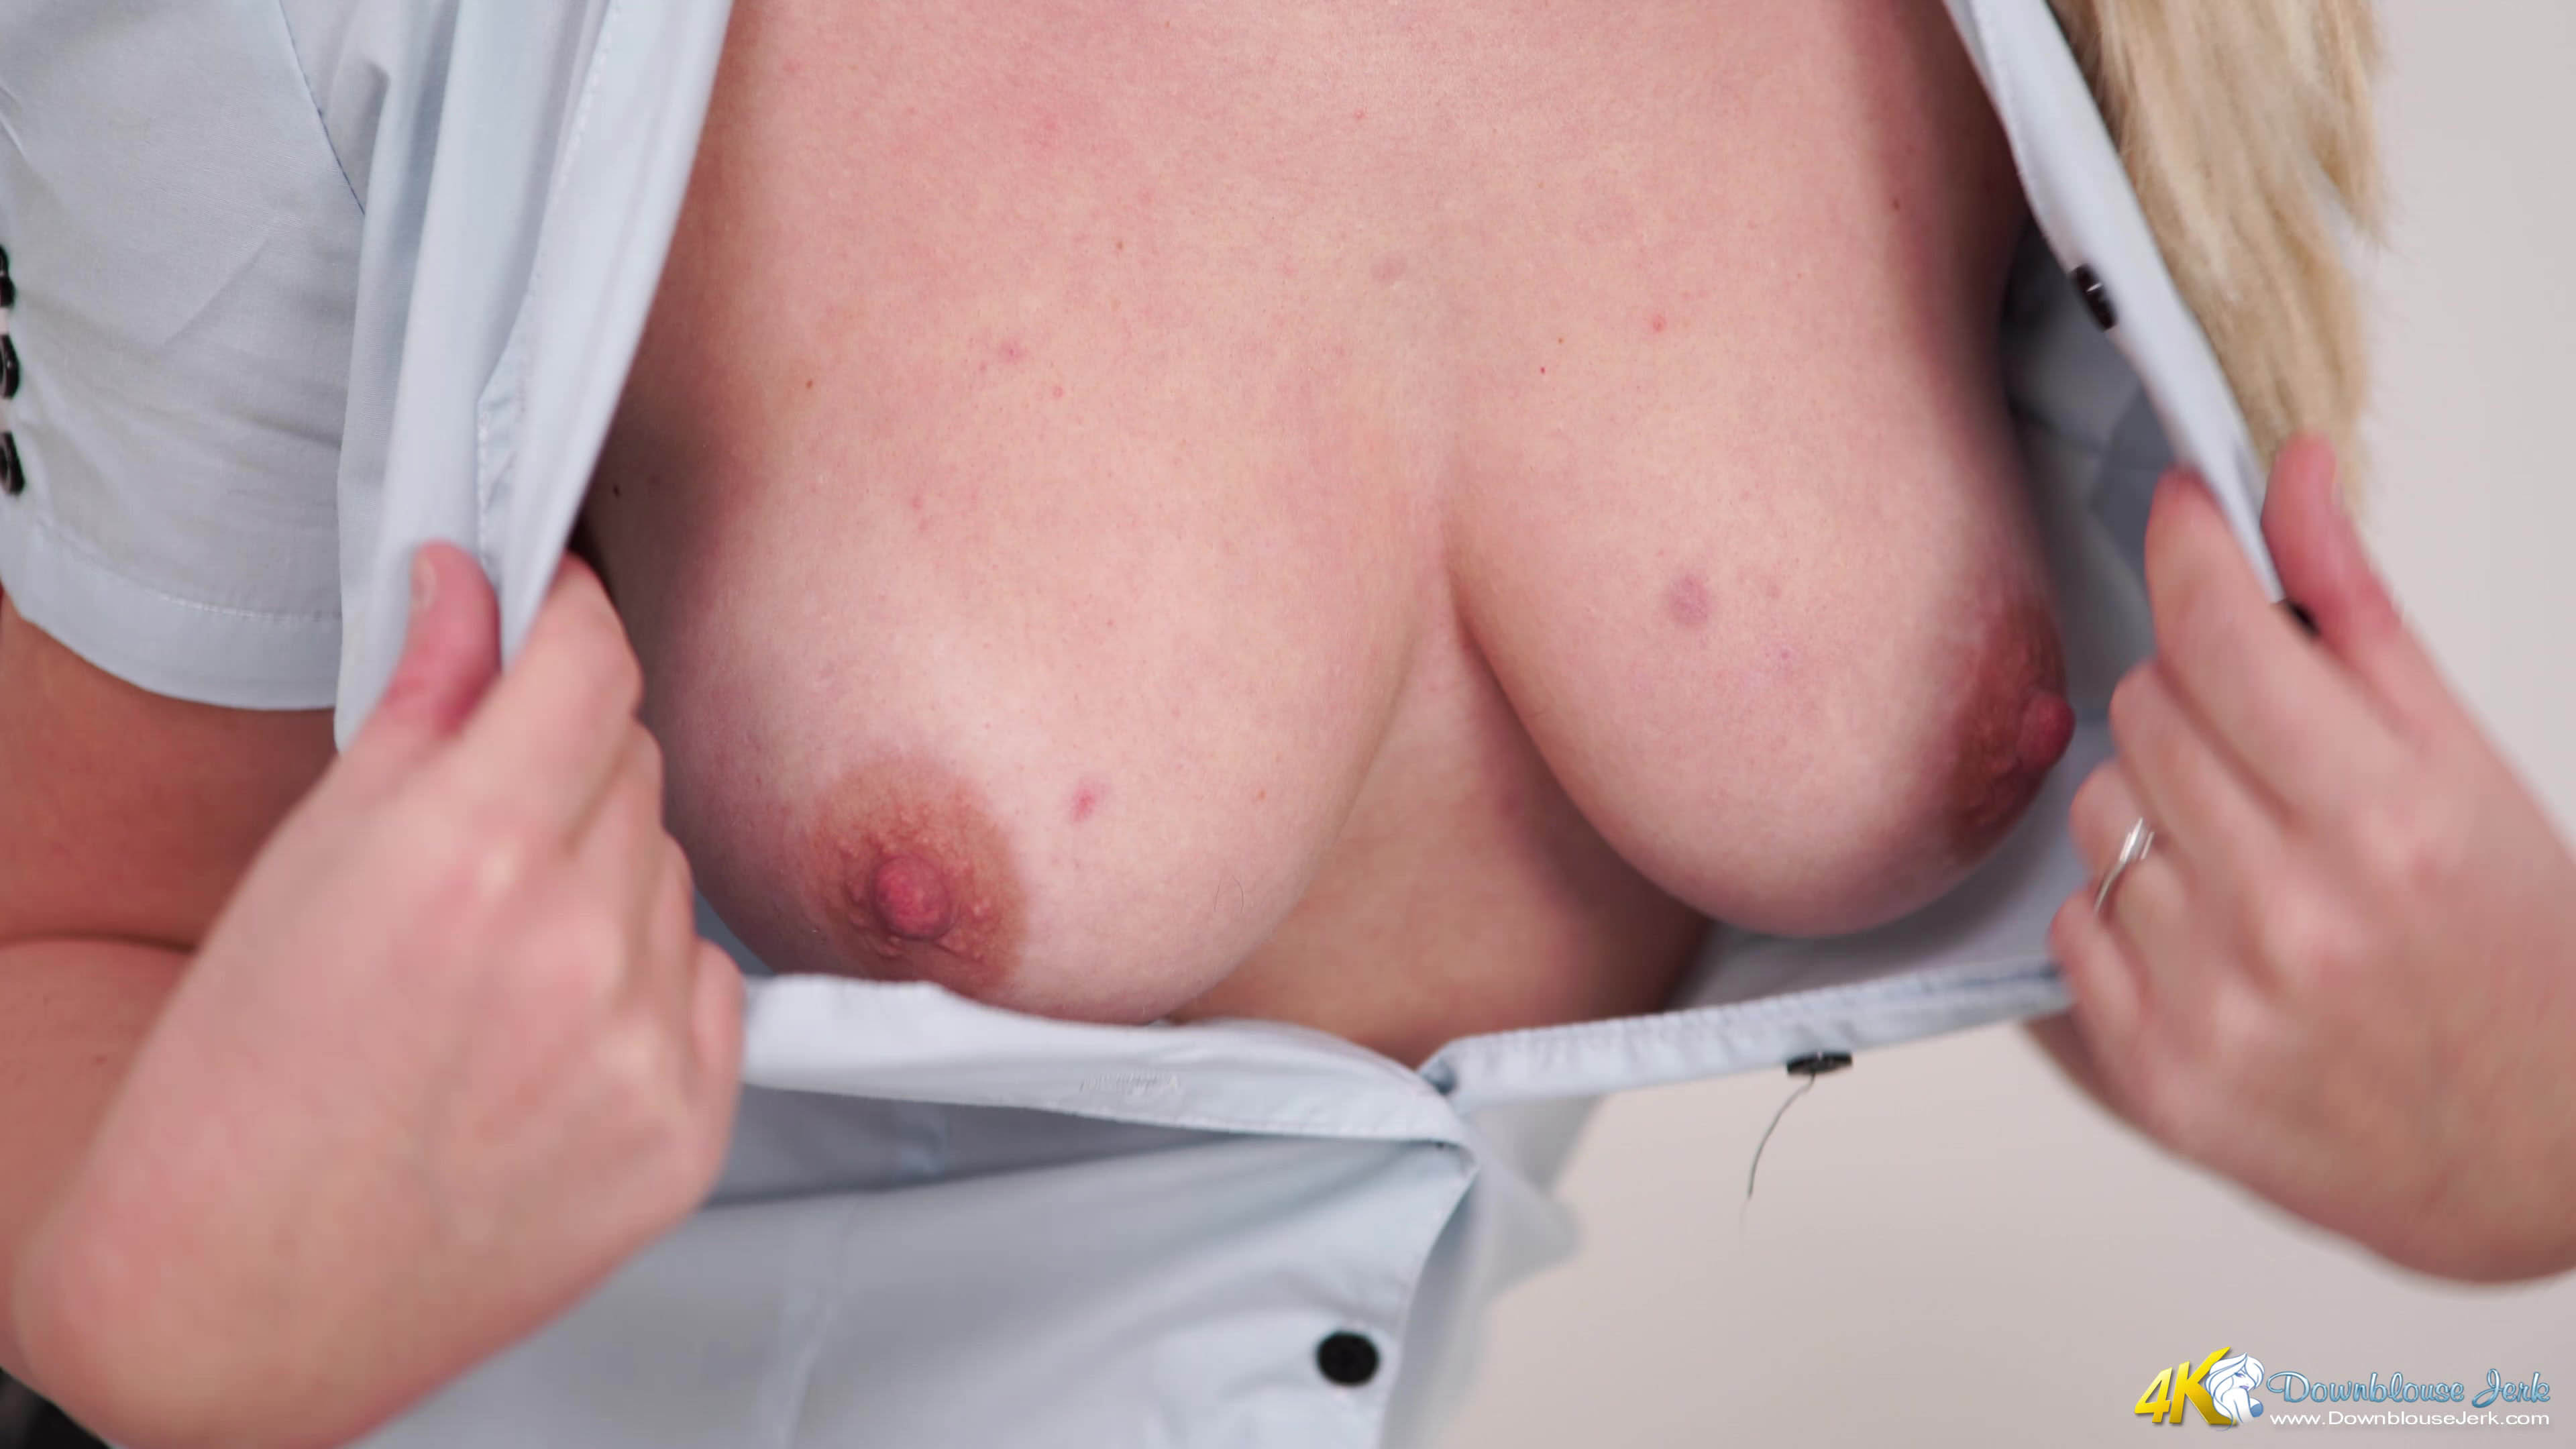 Look at tits down blouse clip that can